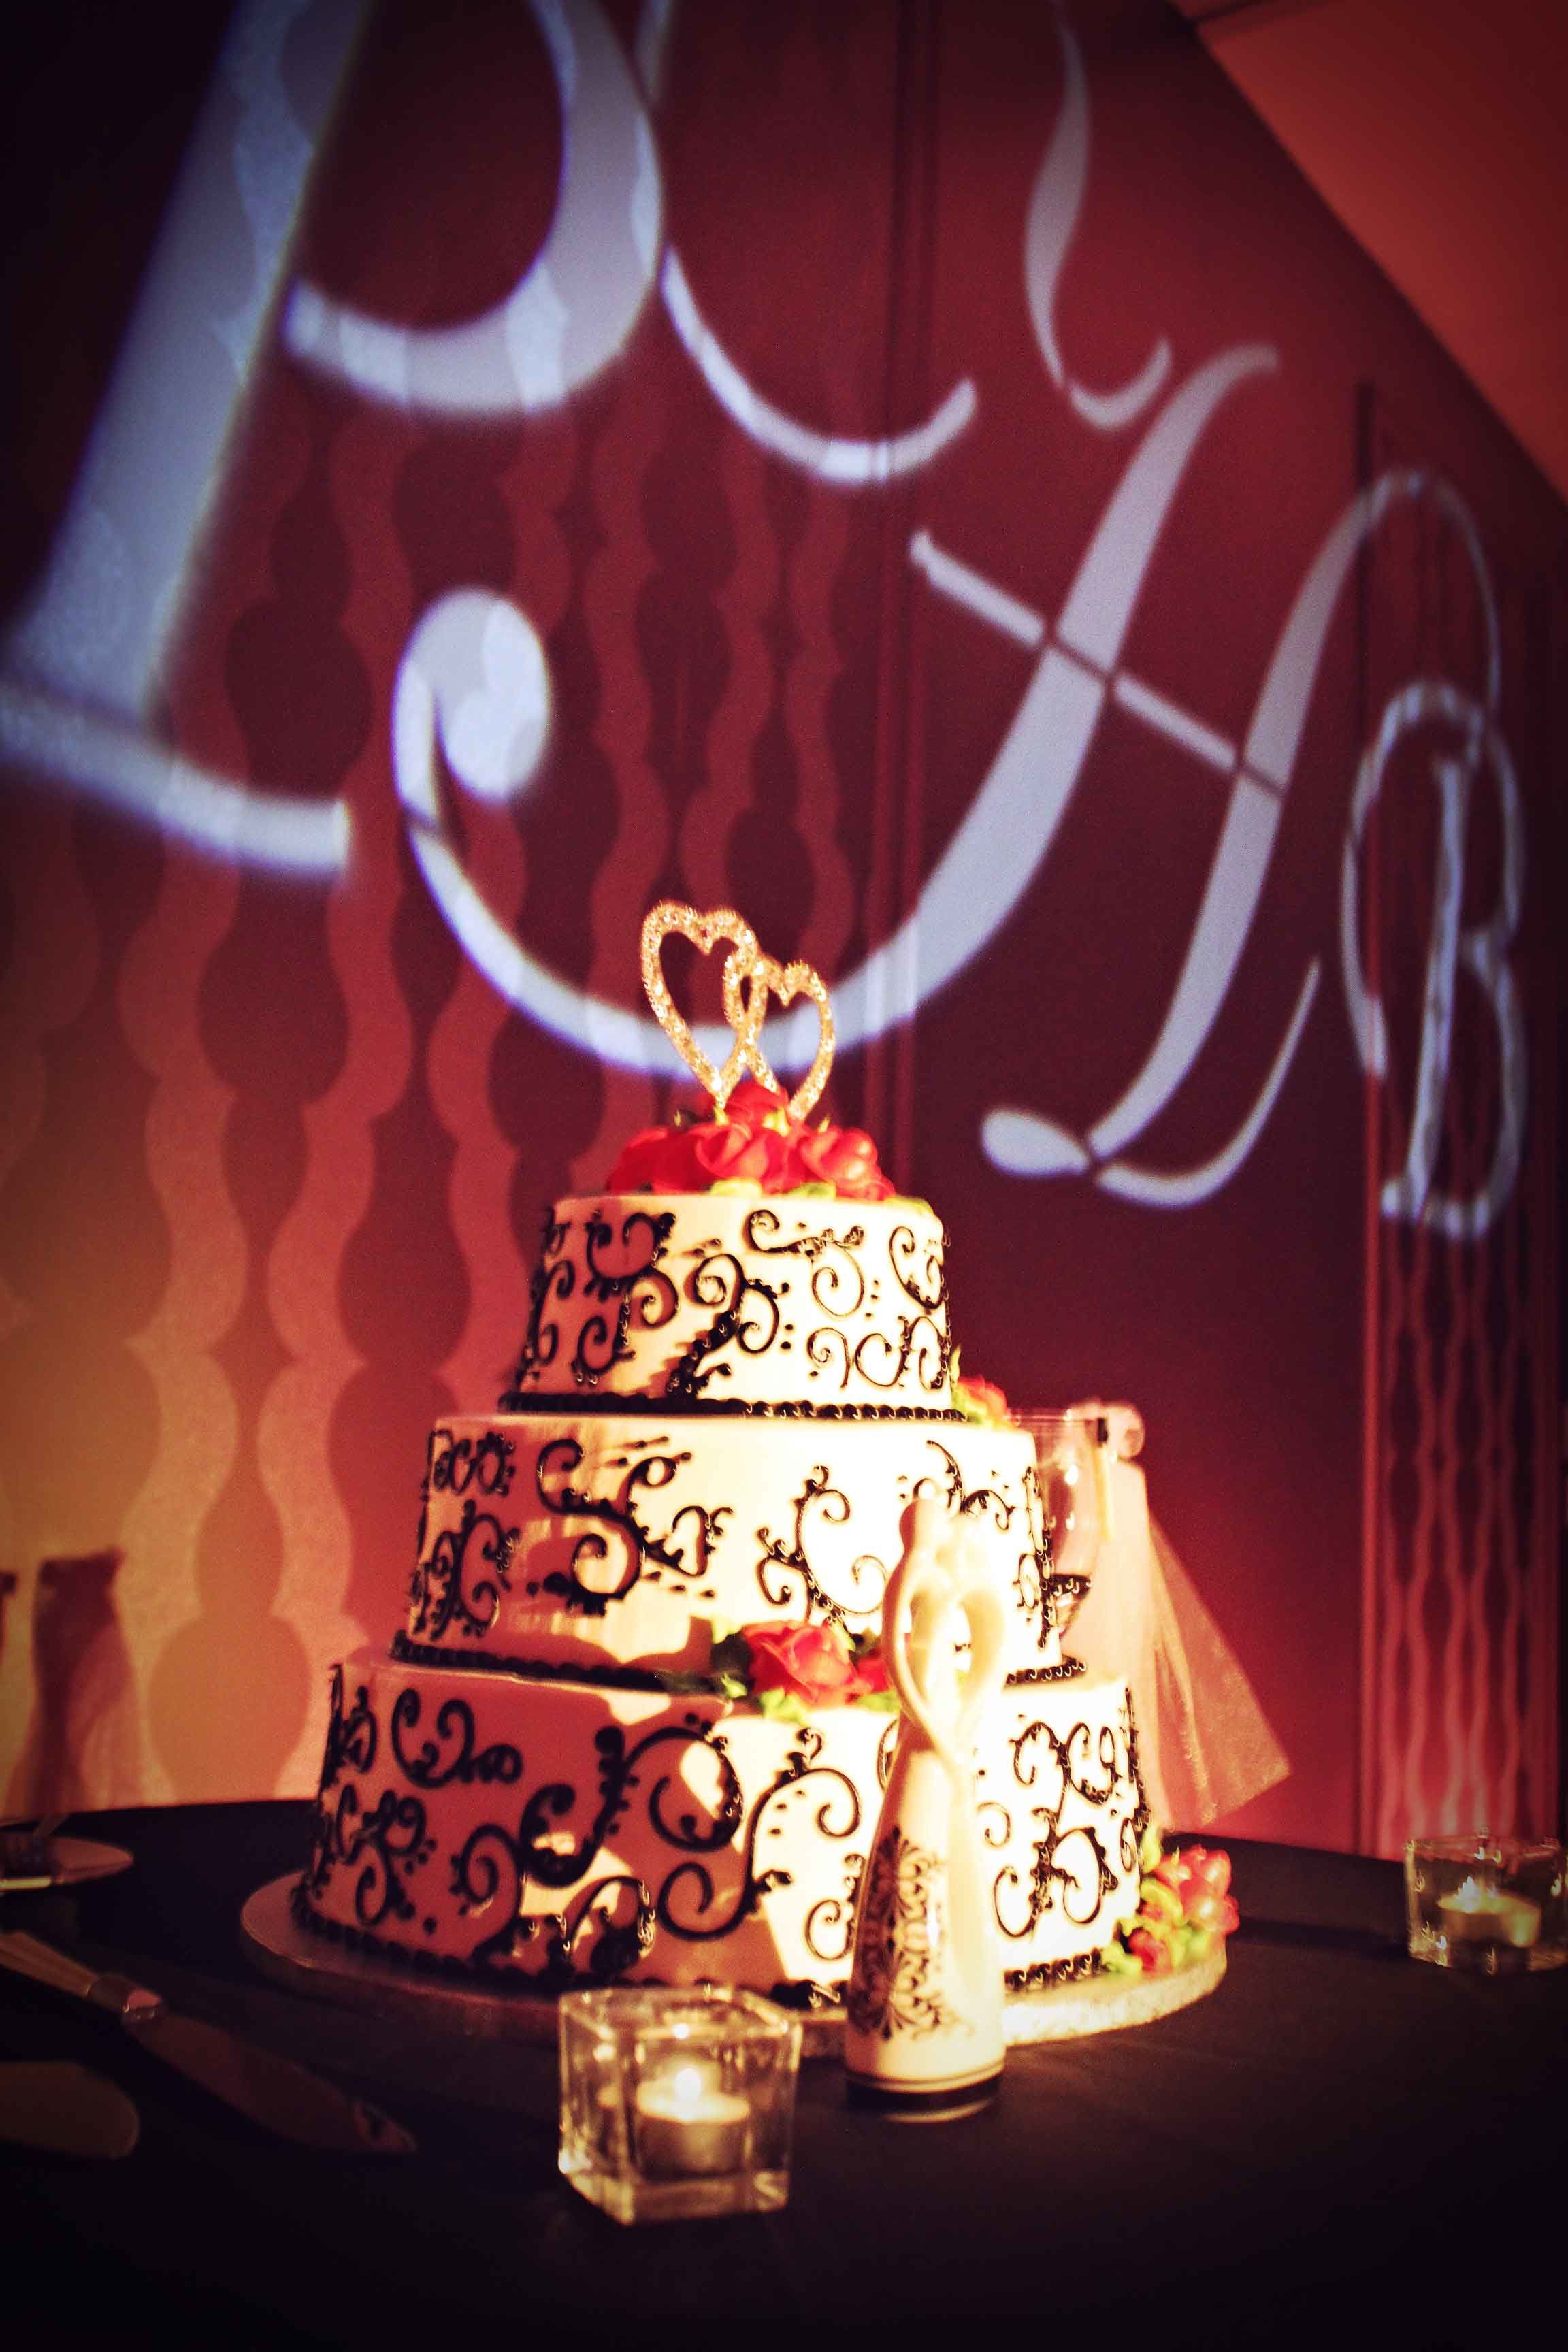 Love this setup of a #weddingcake and #gobo #monogram with beautiful #uplighting at this #wedding #reception! #diy #diywedding #weddingideas #weddinginspiration #ideas #inspiration #rentmywedding #celebration #wedding #reception #party #wedding #planner #event #planning #dreamwedding